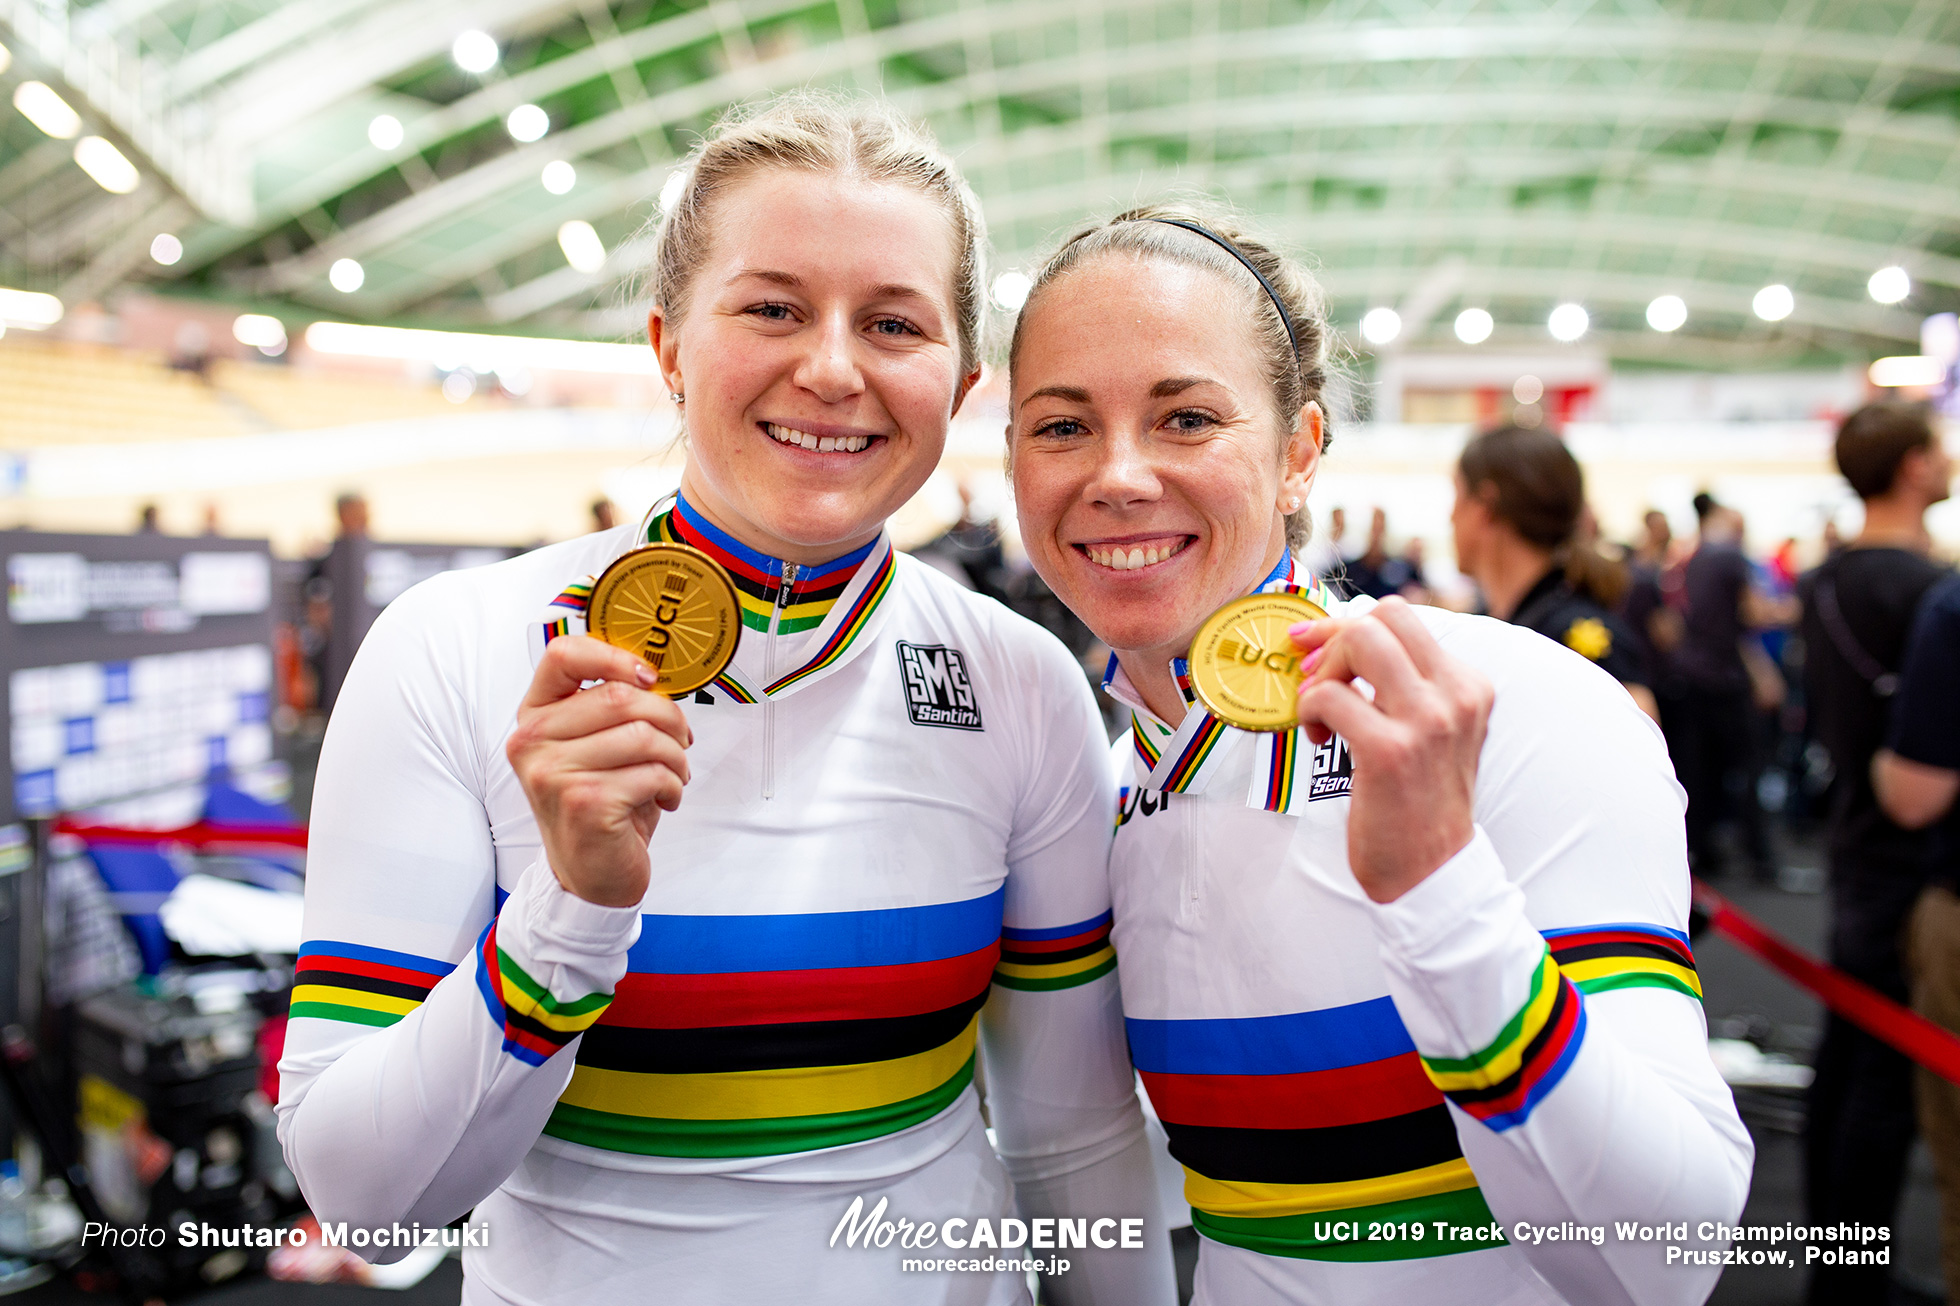 Women's Team Sprint Final / 2019 Track Cycling World Championships Pruszków, Poland